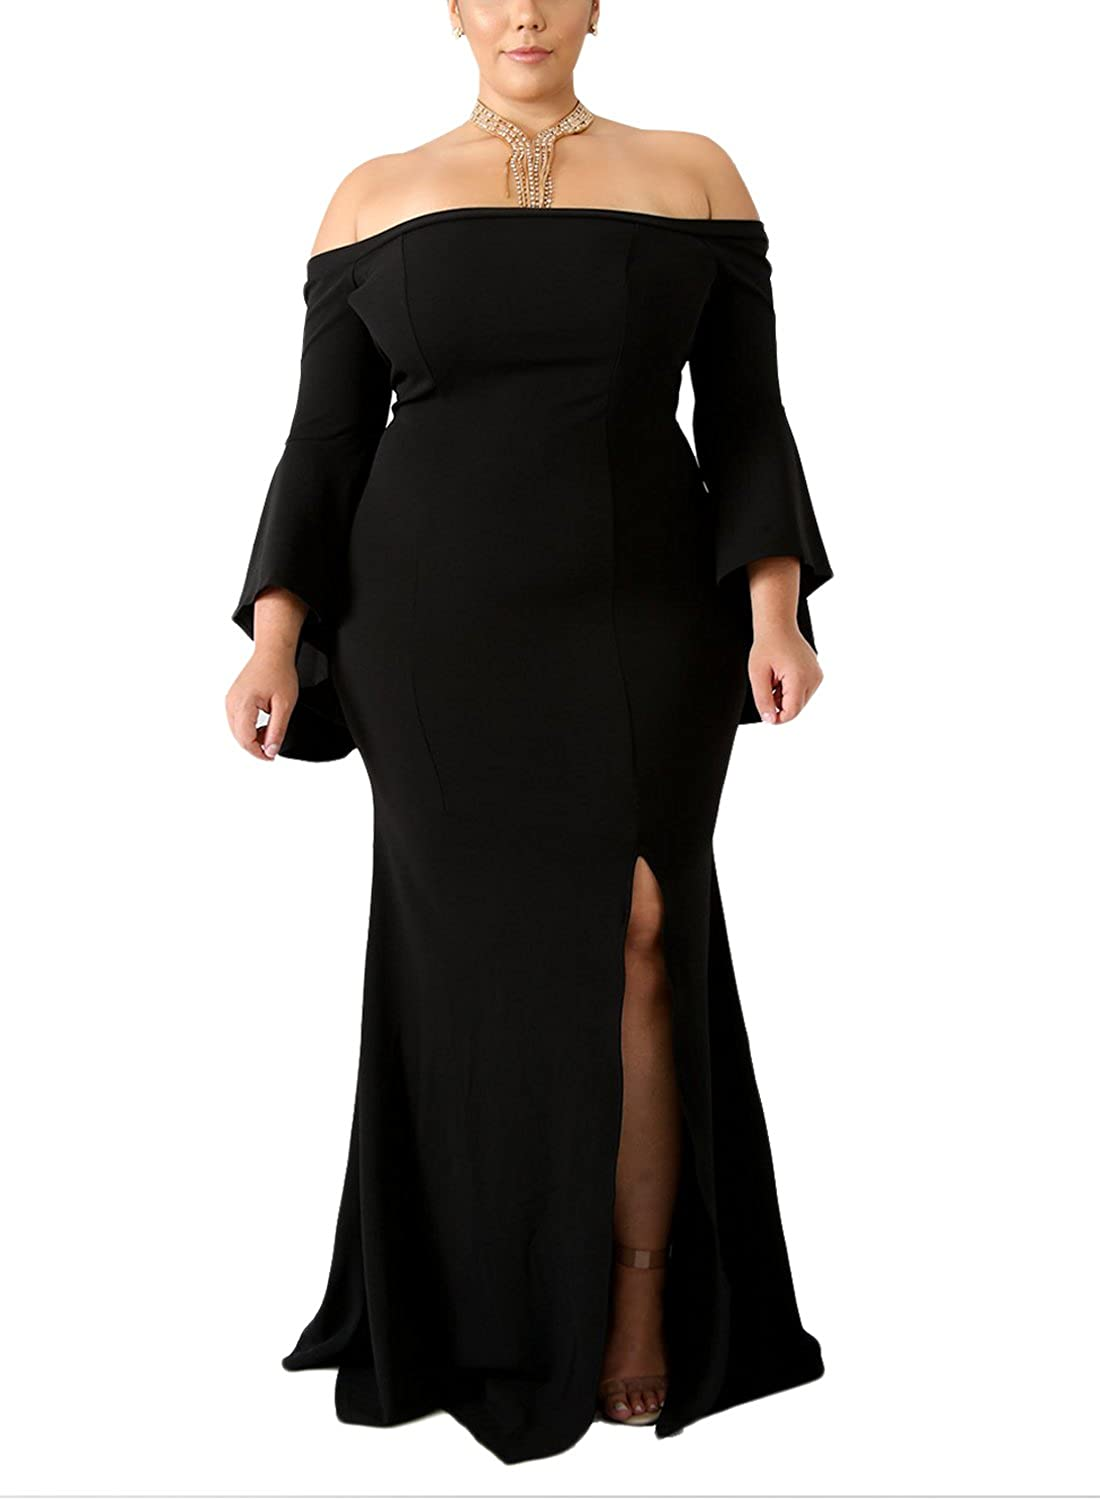 34aa7255c6f Keep this plus size formal dress with shiny necklace and simple high heels.  Feature  Elegant mermaid design